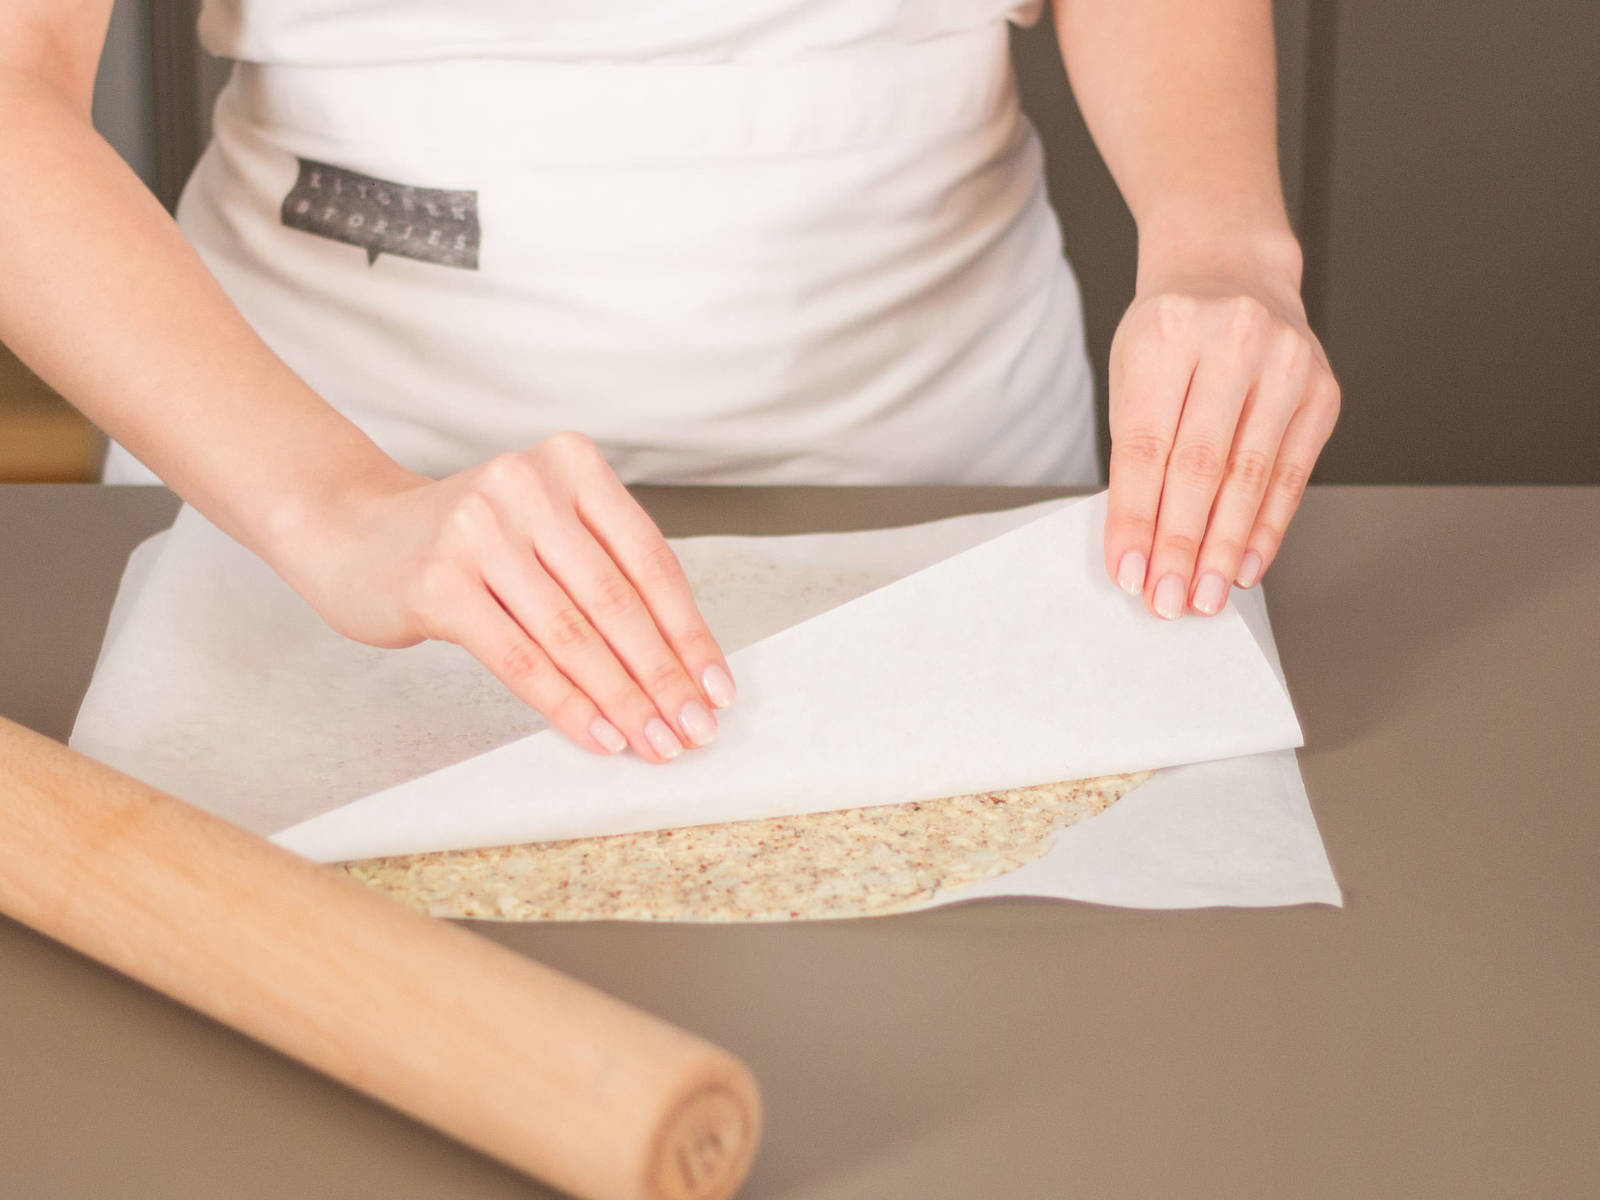 Place dough between two sheets of parchment paper and roll out using a rolling pin. Discard top layer of parchment paper, transfer to a baking sheet, and bake in preheated oven at 180°C/350°F for approx. 15 – 20 min.